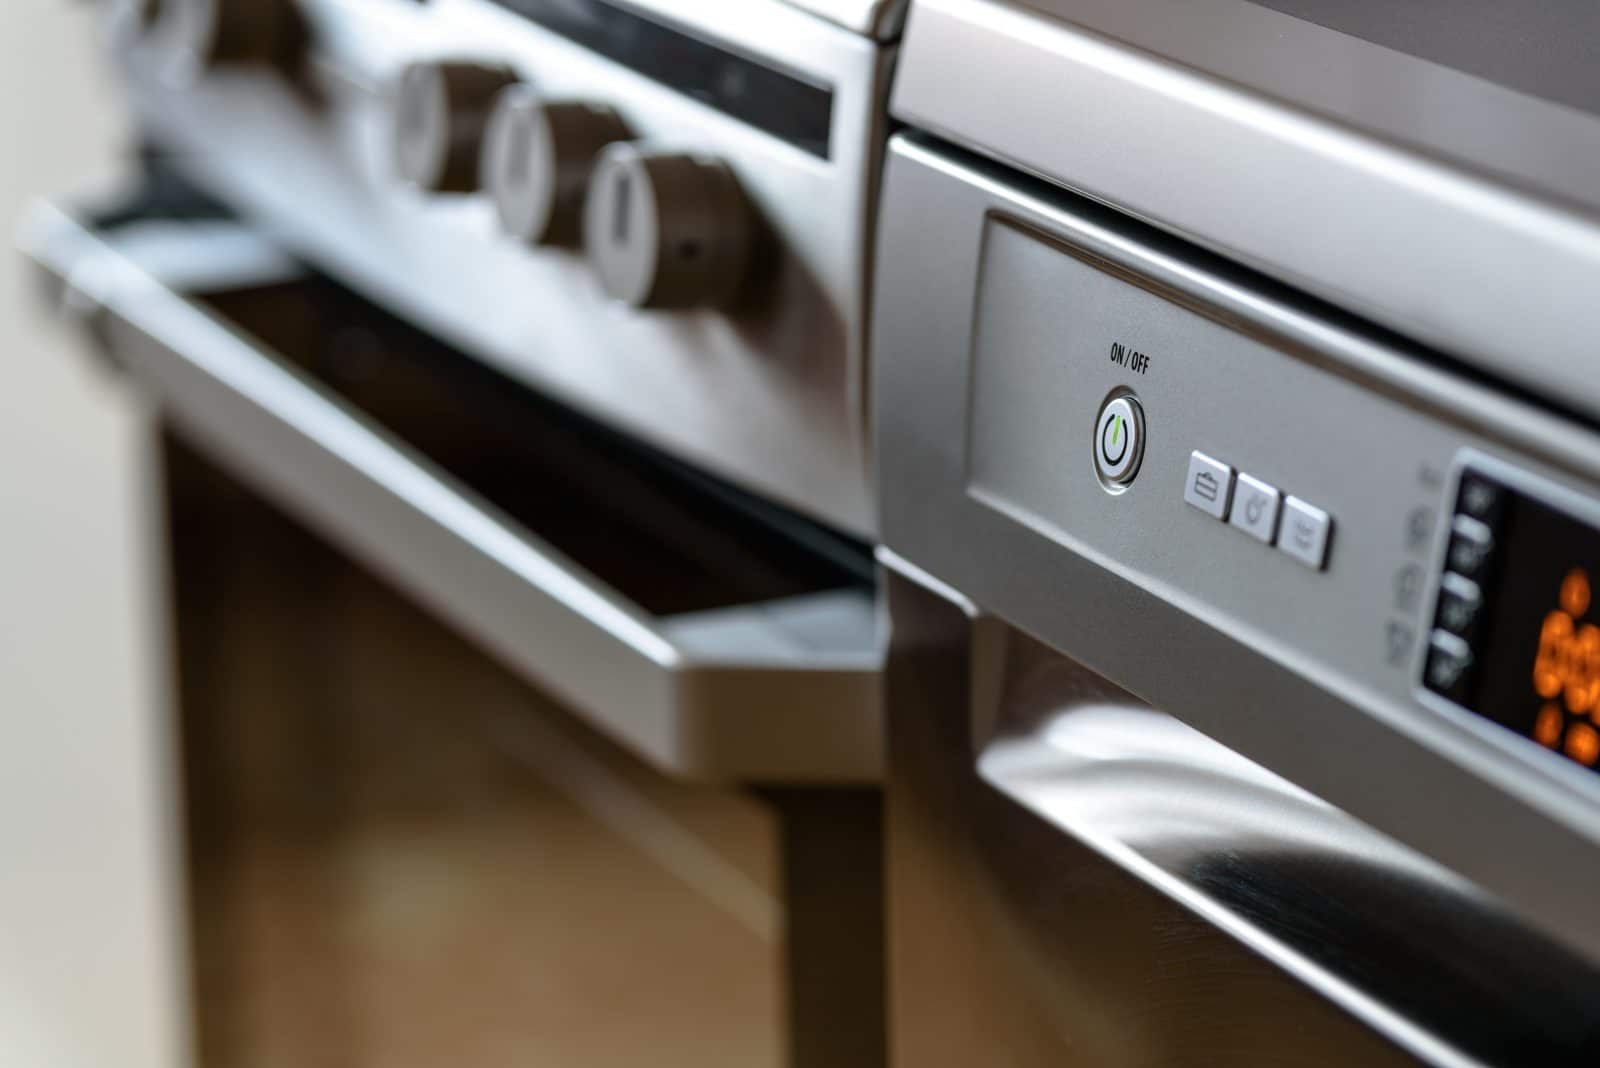 close-up photo of a modern oven which can be used to bake pilot bread crackers